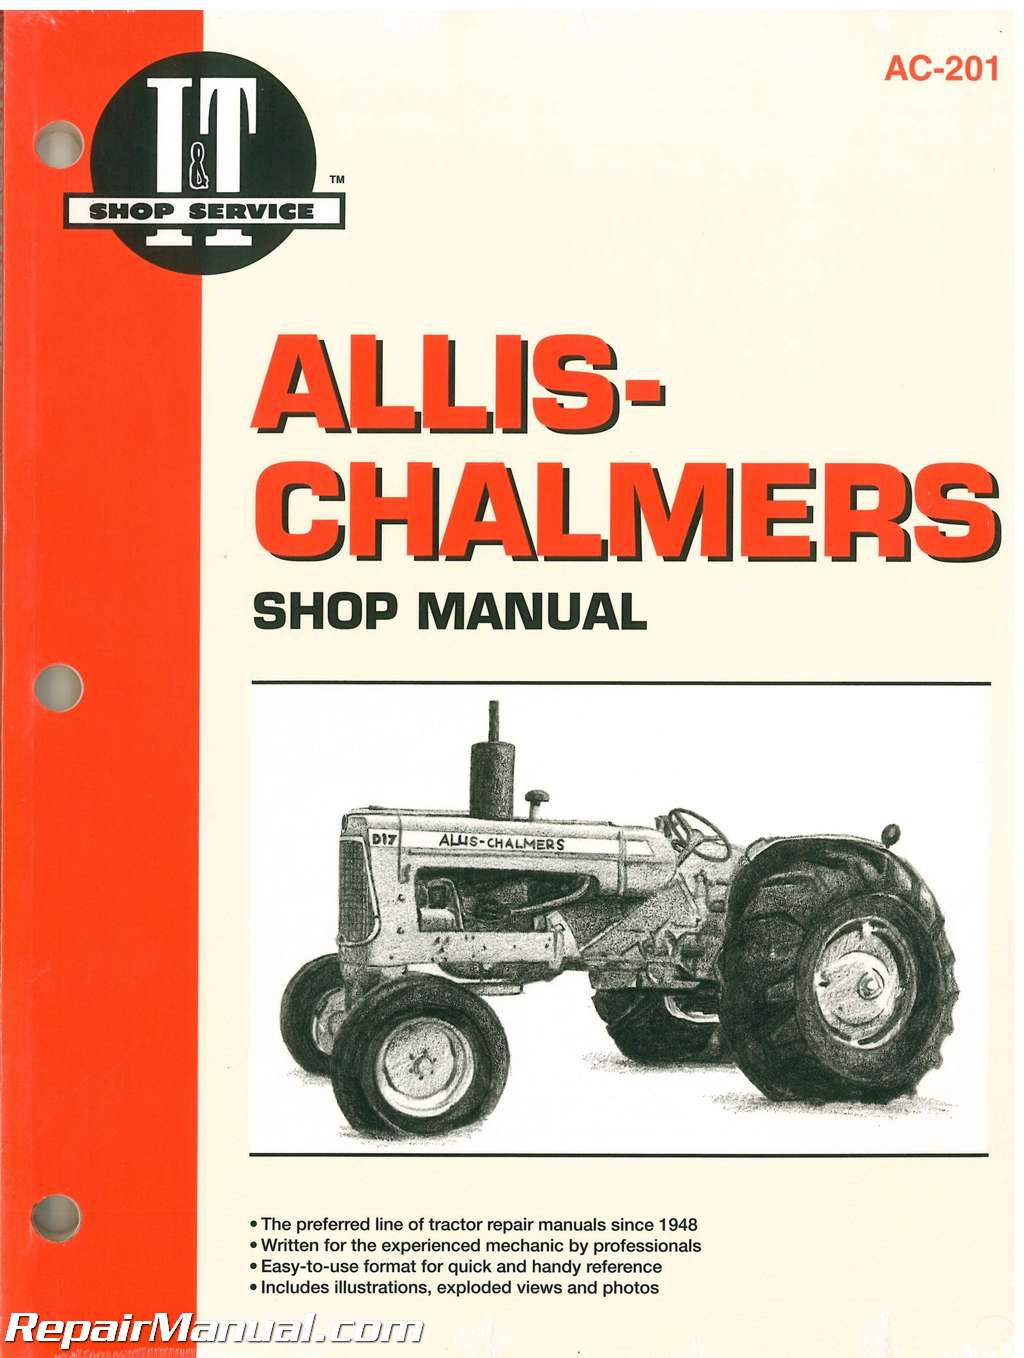 Allis Chalmers 160 170 175 D 10 D 10 Series III D 12 D 12 Series III D 14 D 15 D 15 Series II D 17 D 17 Series III and D 17 Series IV Farm Tractor Workshop Manual_001 allis chalmers tractor manuals repair manuals online allis chalmers 5040 wiring diagram at crackthecode.co